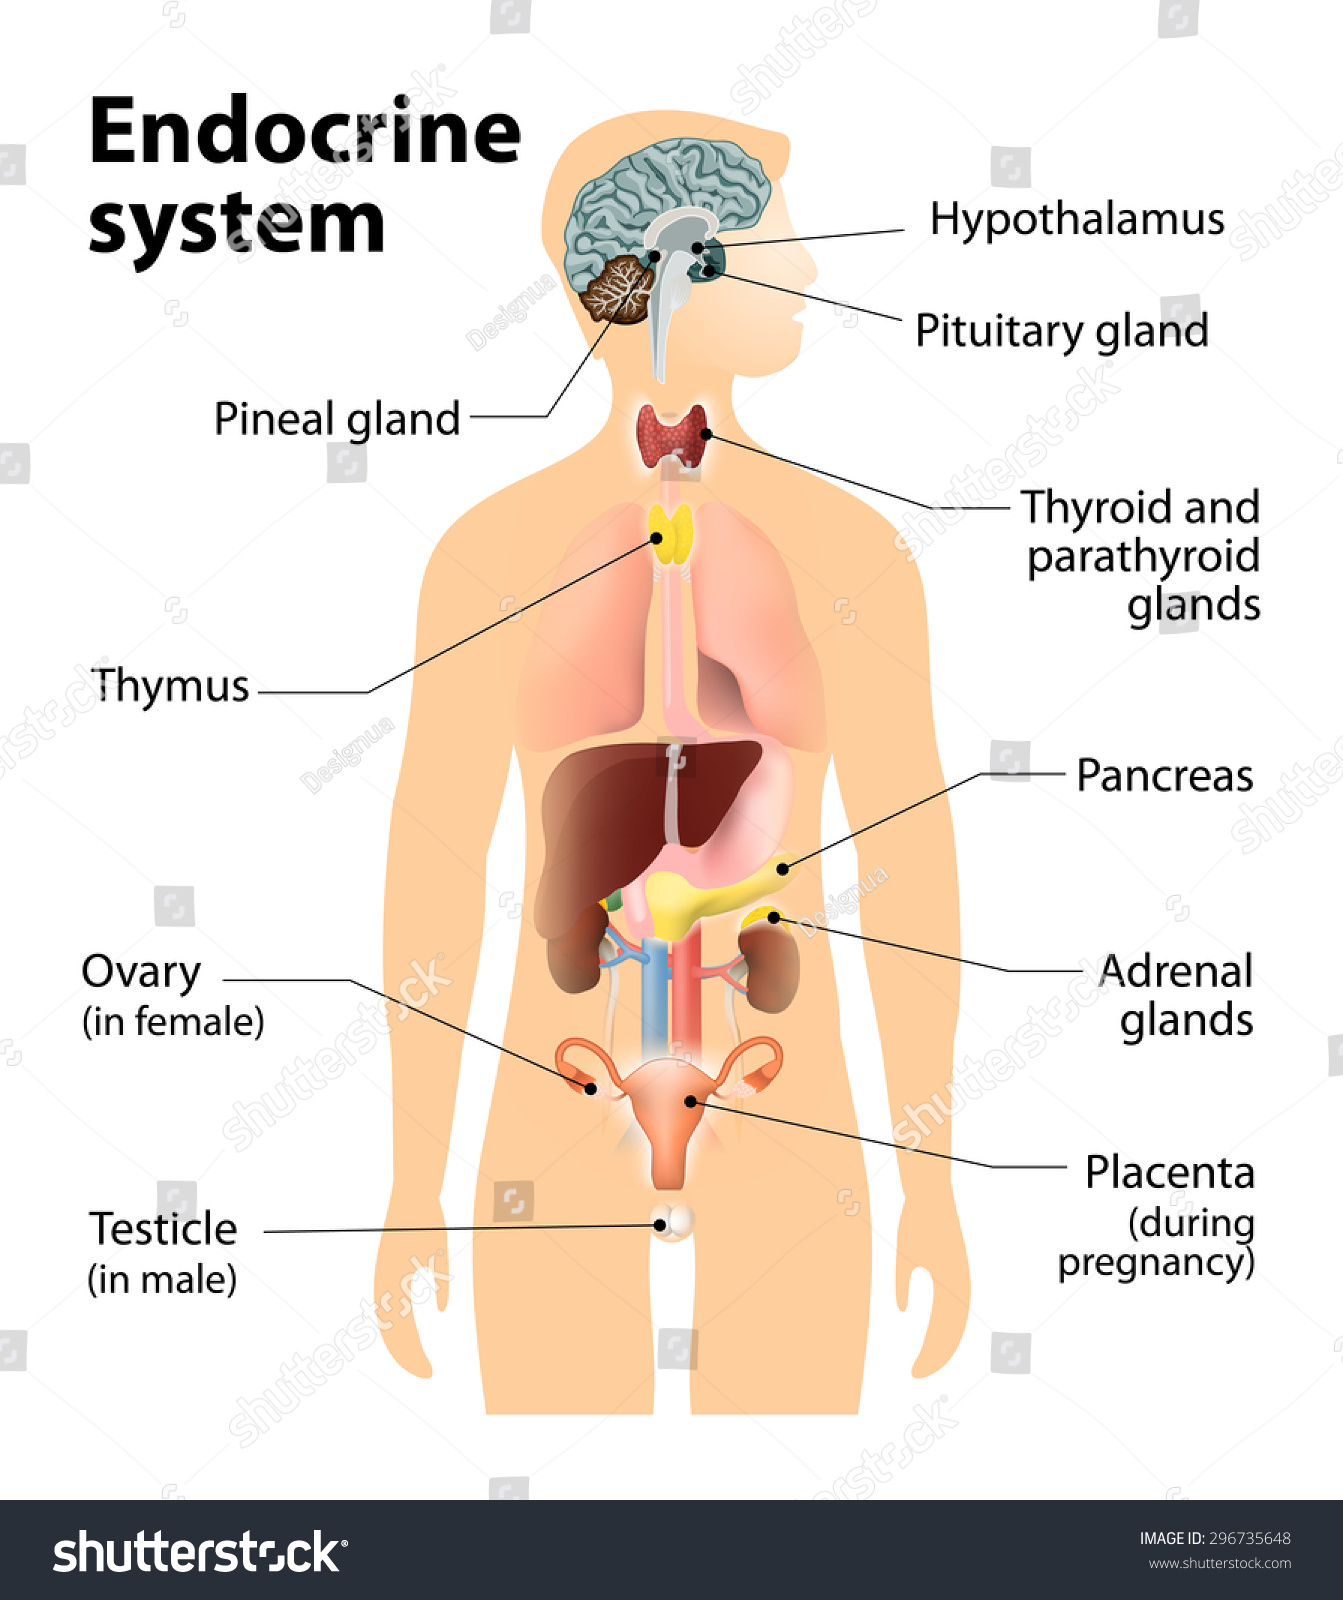 Royalty Free Stock Illustration of Endocrine System Human Anatomy ...